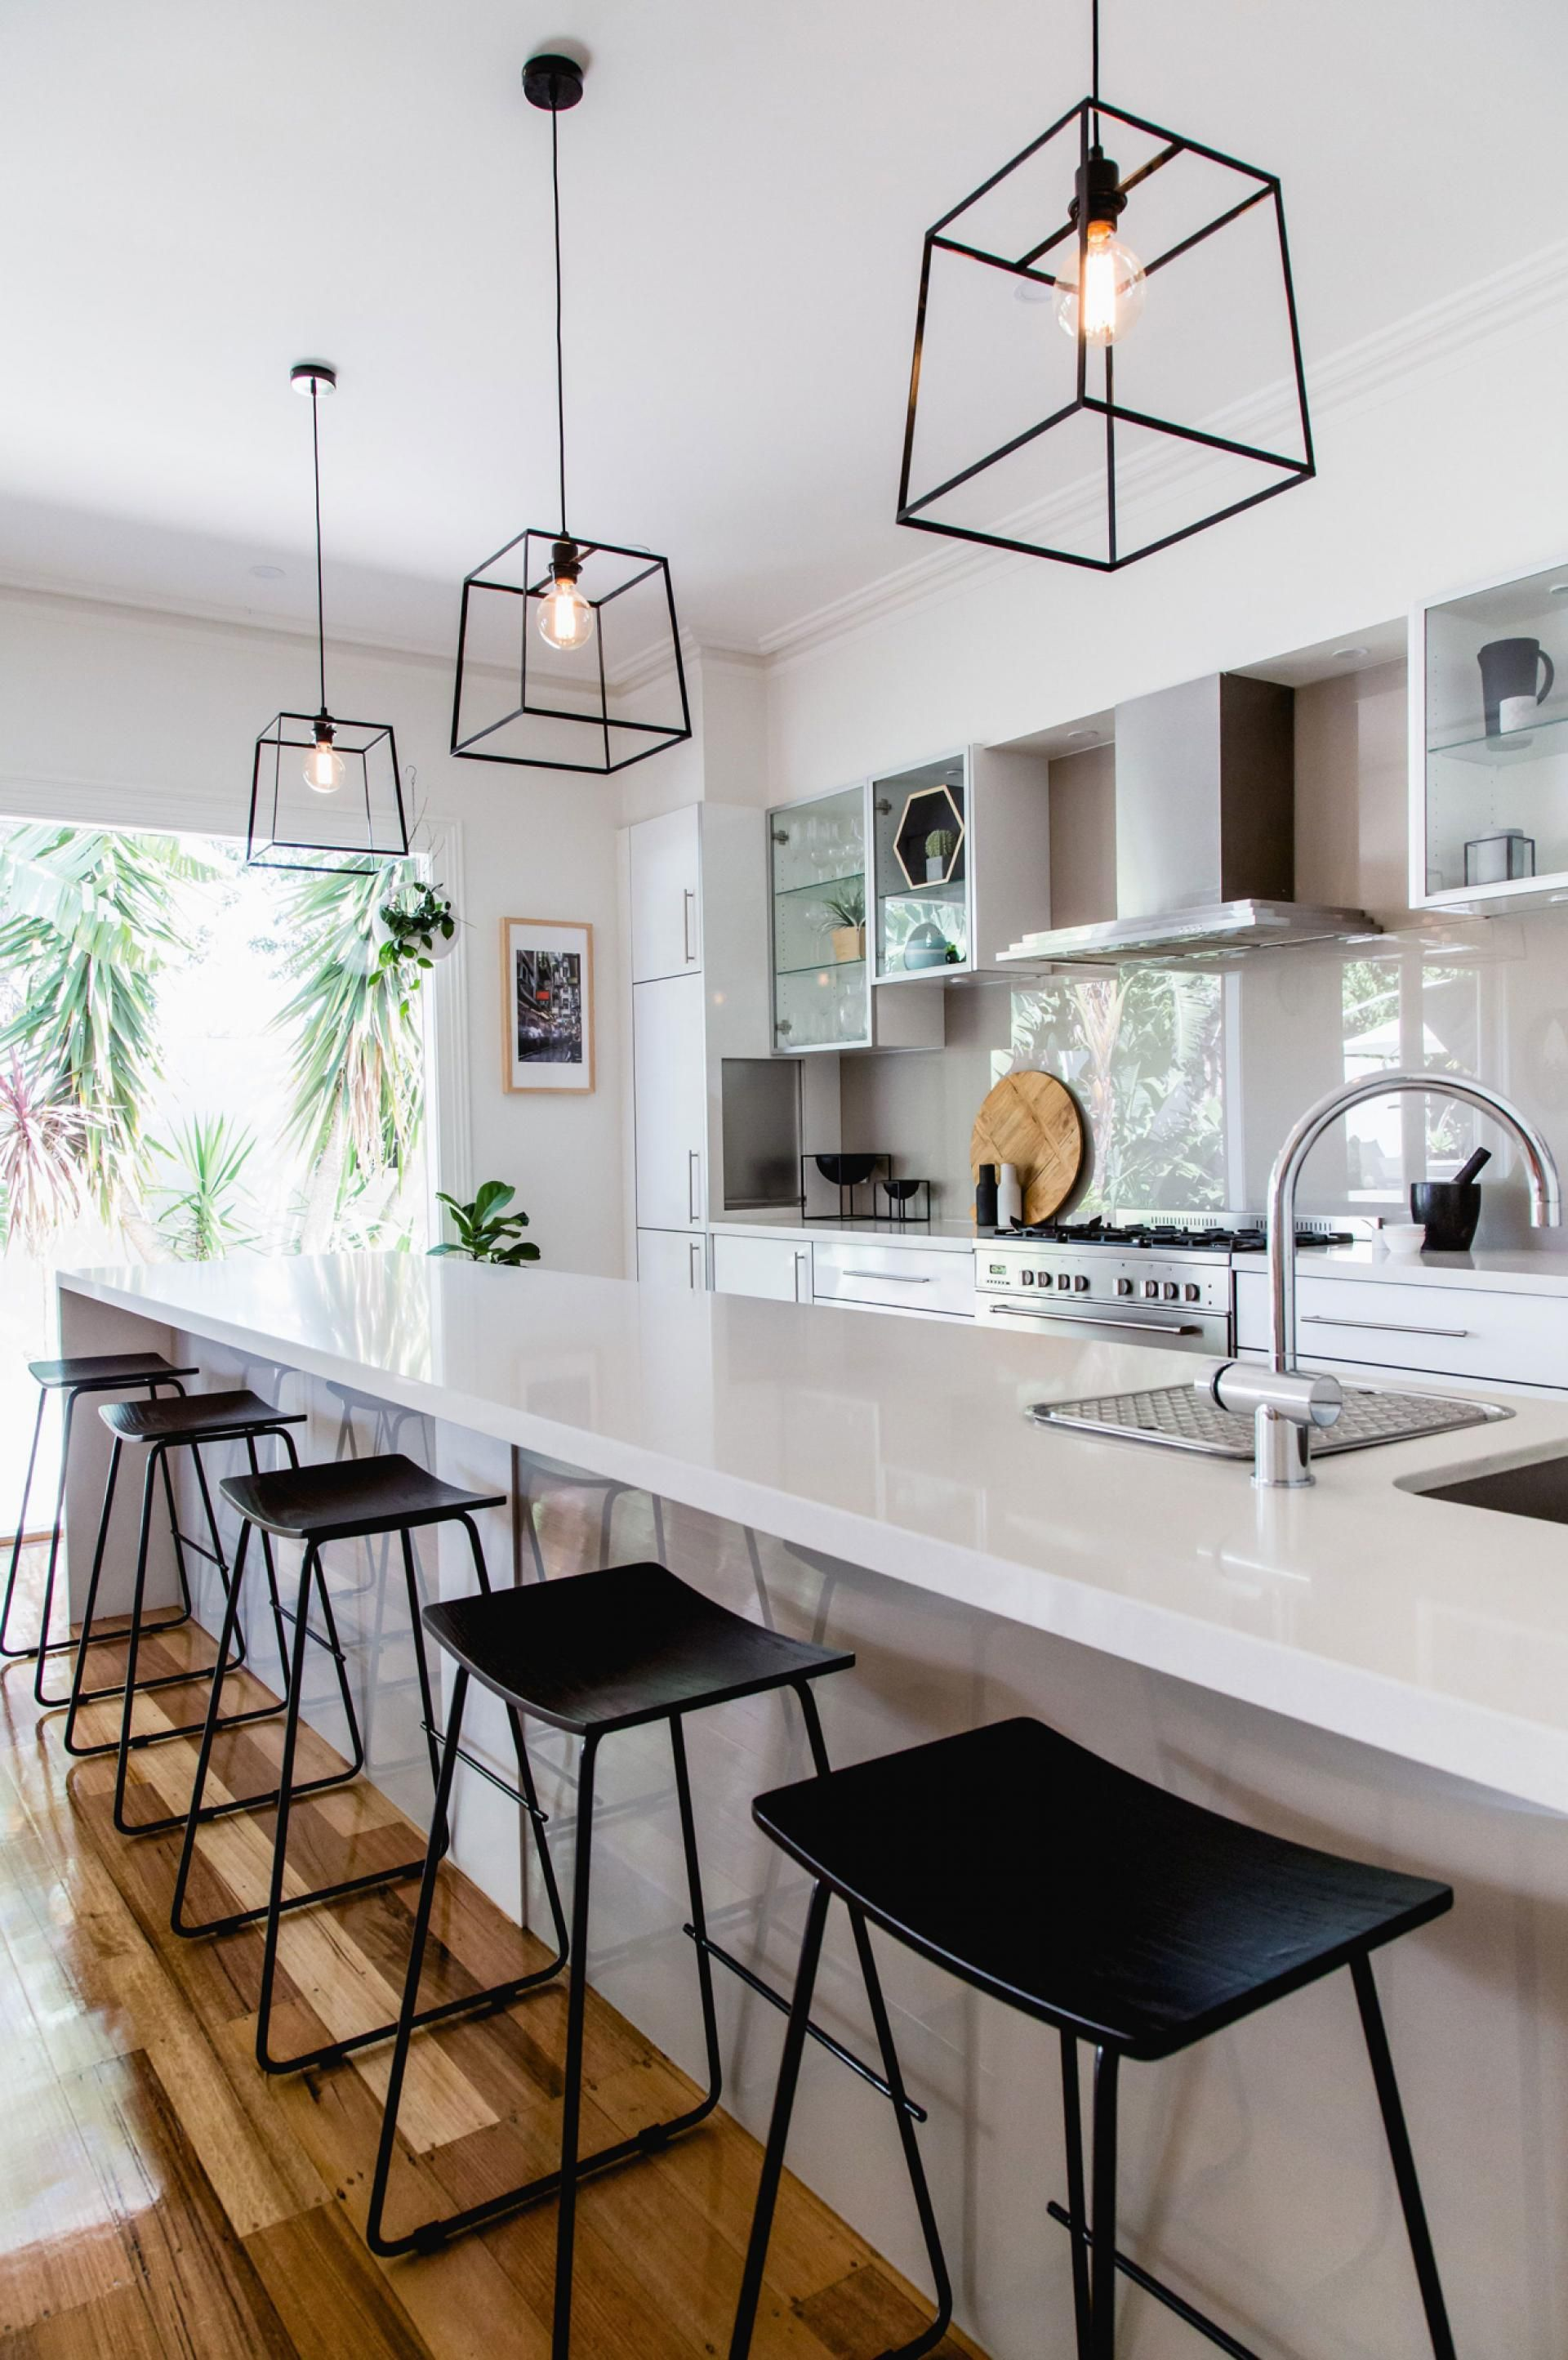 Kitchens that get pendant lights right. Photography by